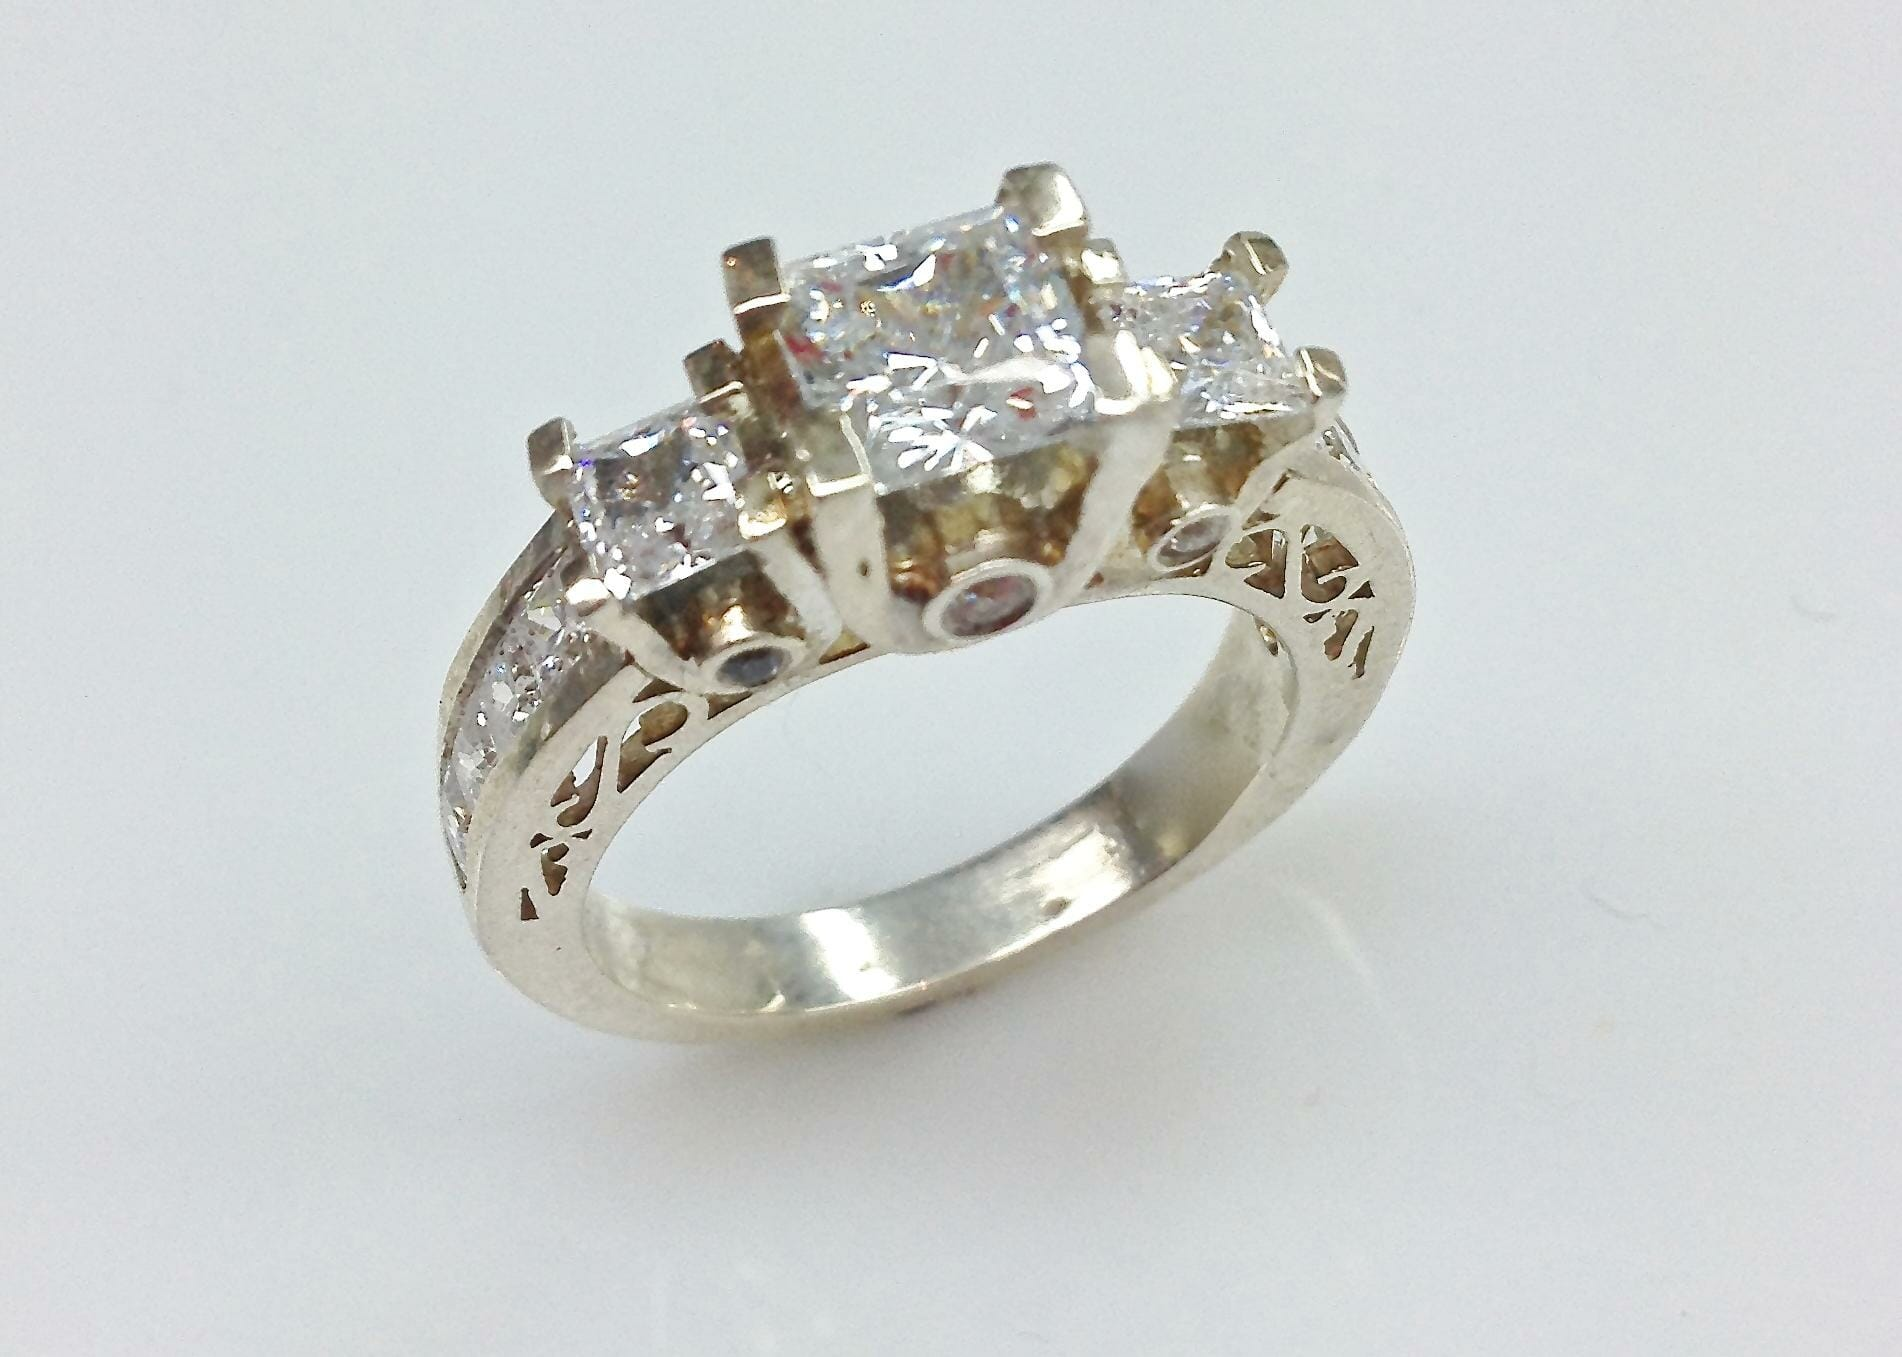 Princess cut three stone diamond engagement ring with carved detail